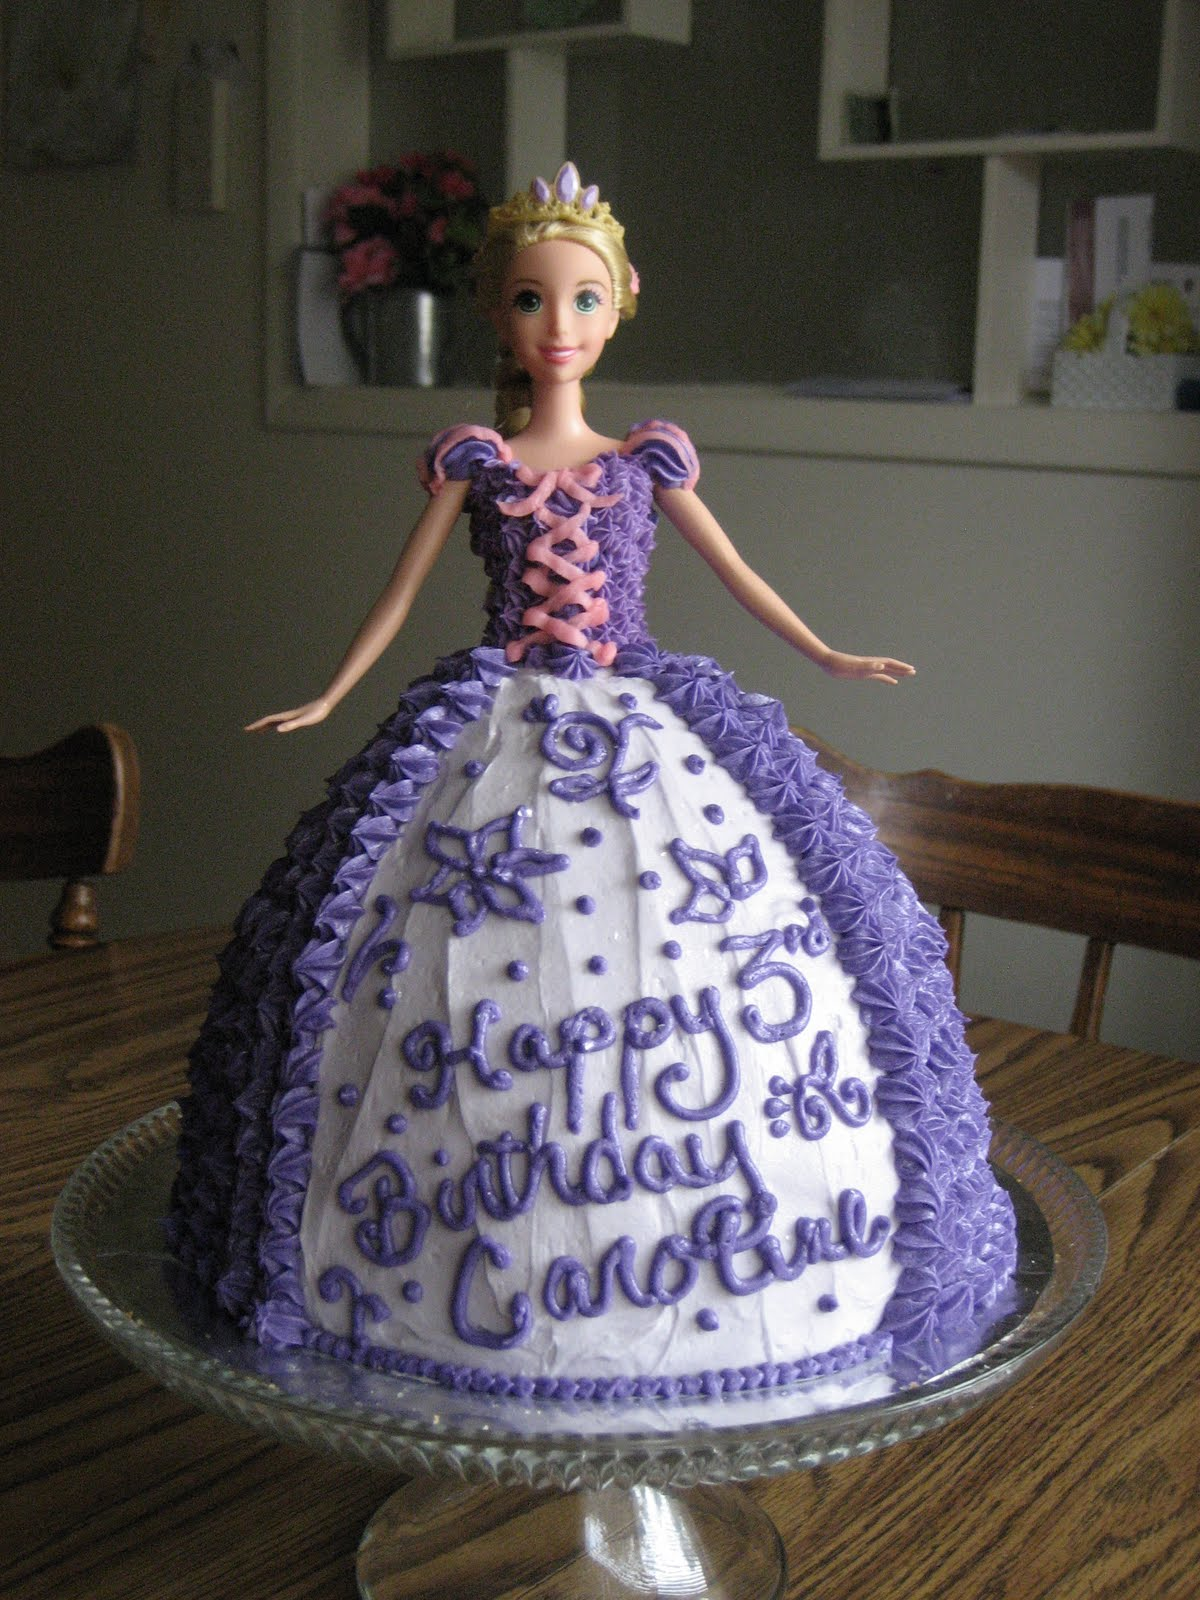 ... with tangled lately and wanted a rapunzel cake i got this idea from my